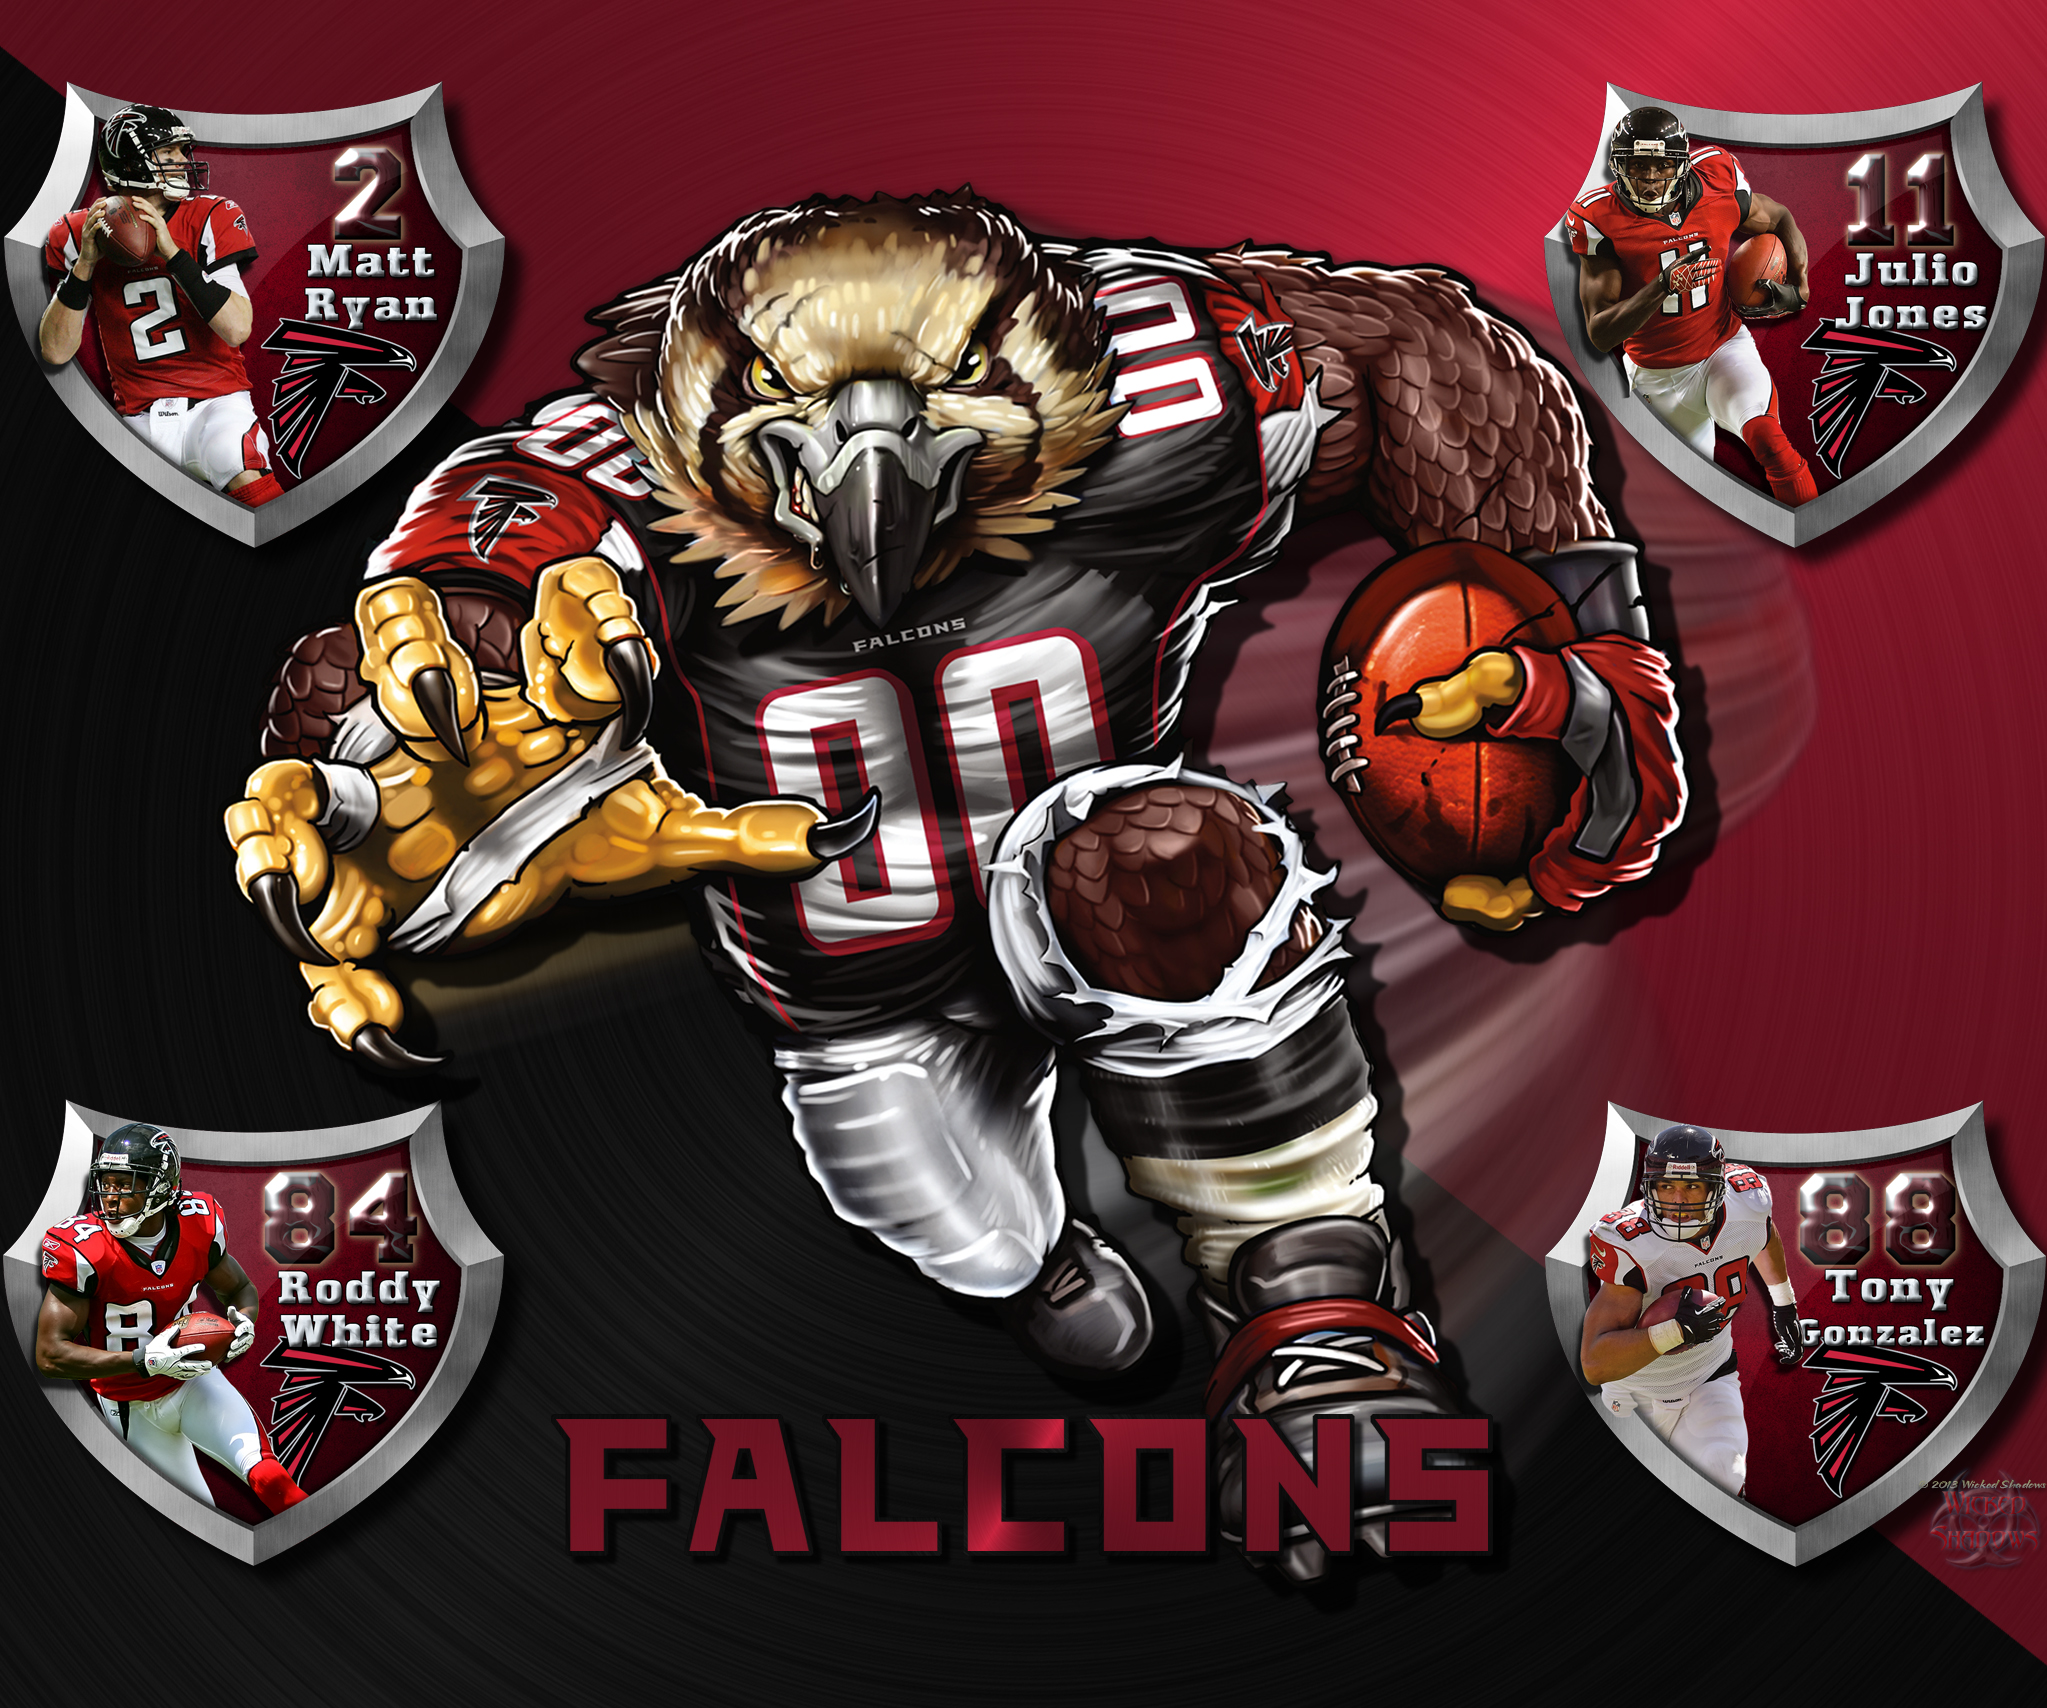 Wallpapers By Wicked Shadows: Falcons Crazy Logo Shield ... | 2047 x 1708 jpeg 1910kB